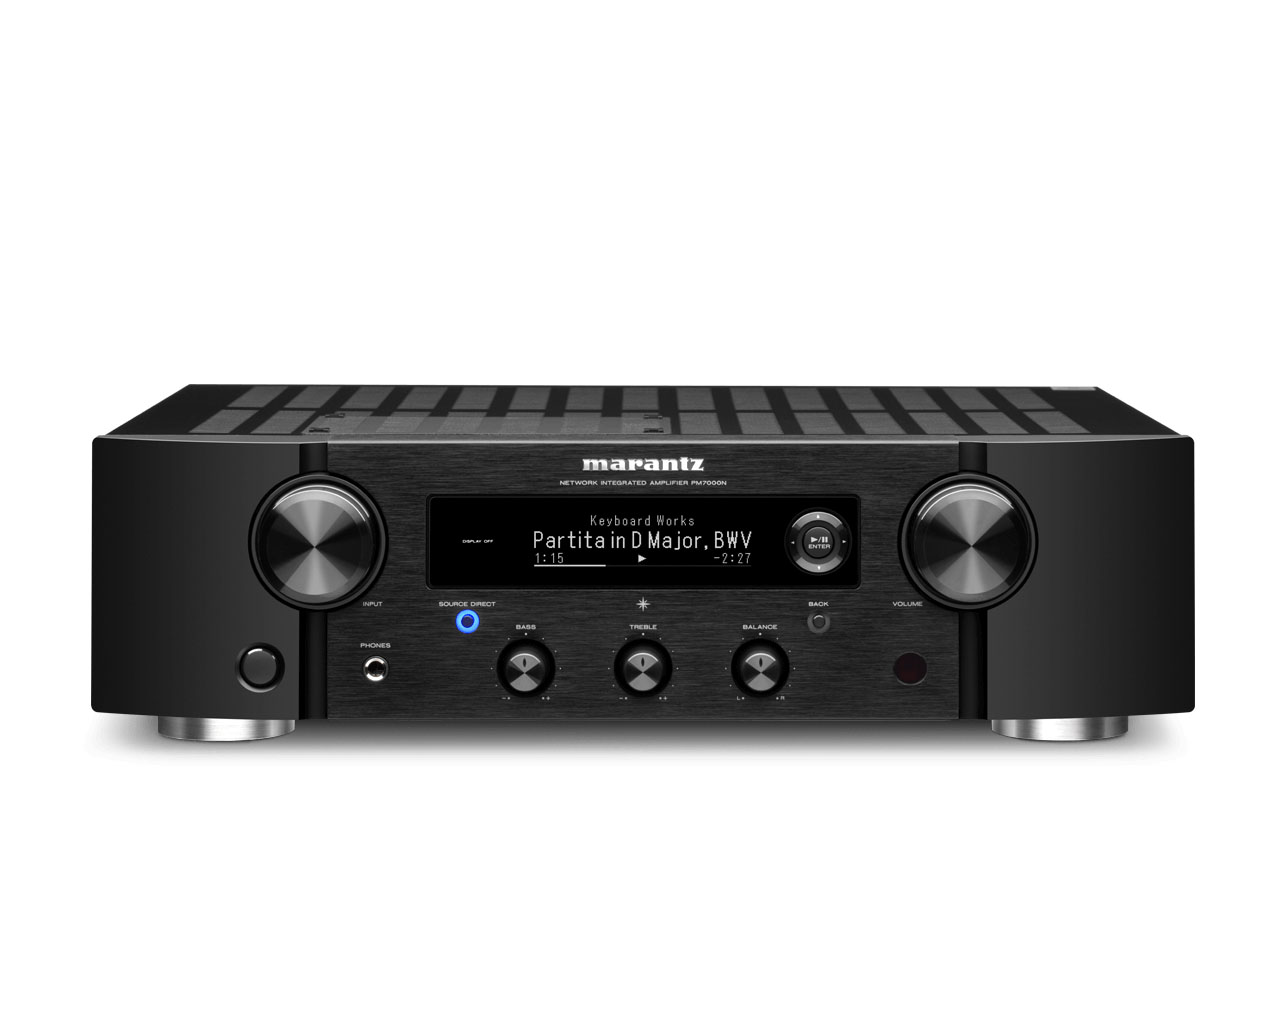 Marantz PM 7000 N Ingegrated Stereo-Amplifier with HEOS Built-in